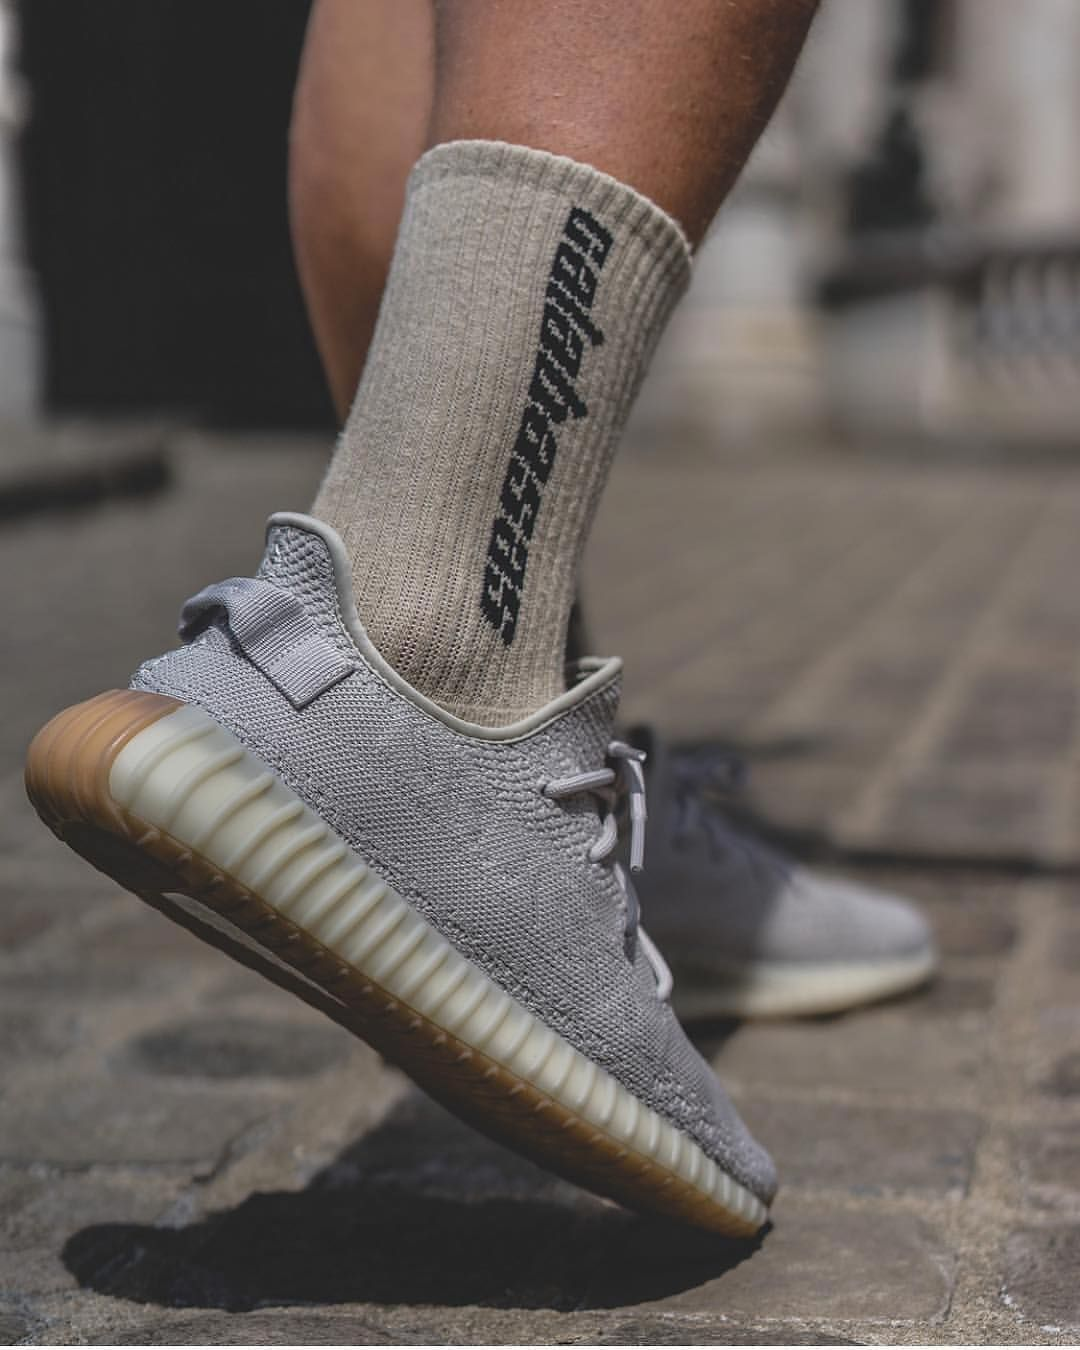 0c6c87a69 Womens size the best Adidas Yeezy Boost 350 V2 Sesame UA sneakers in ...